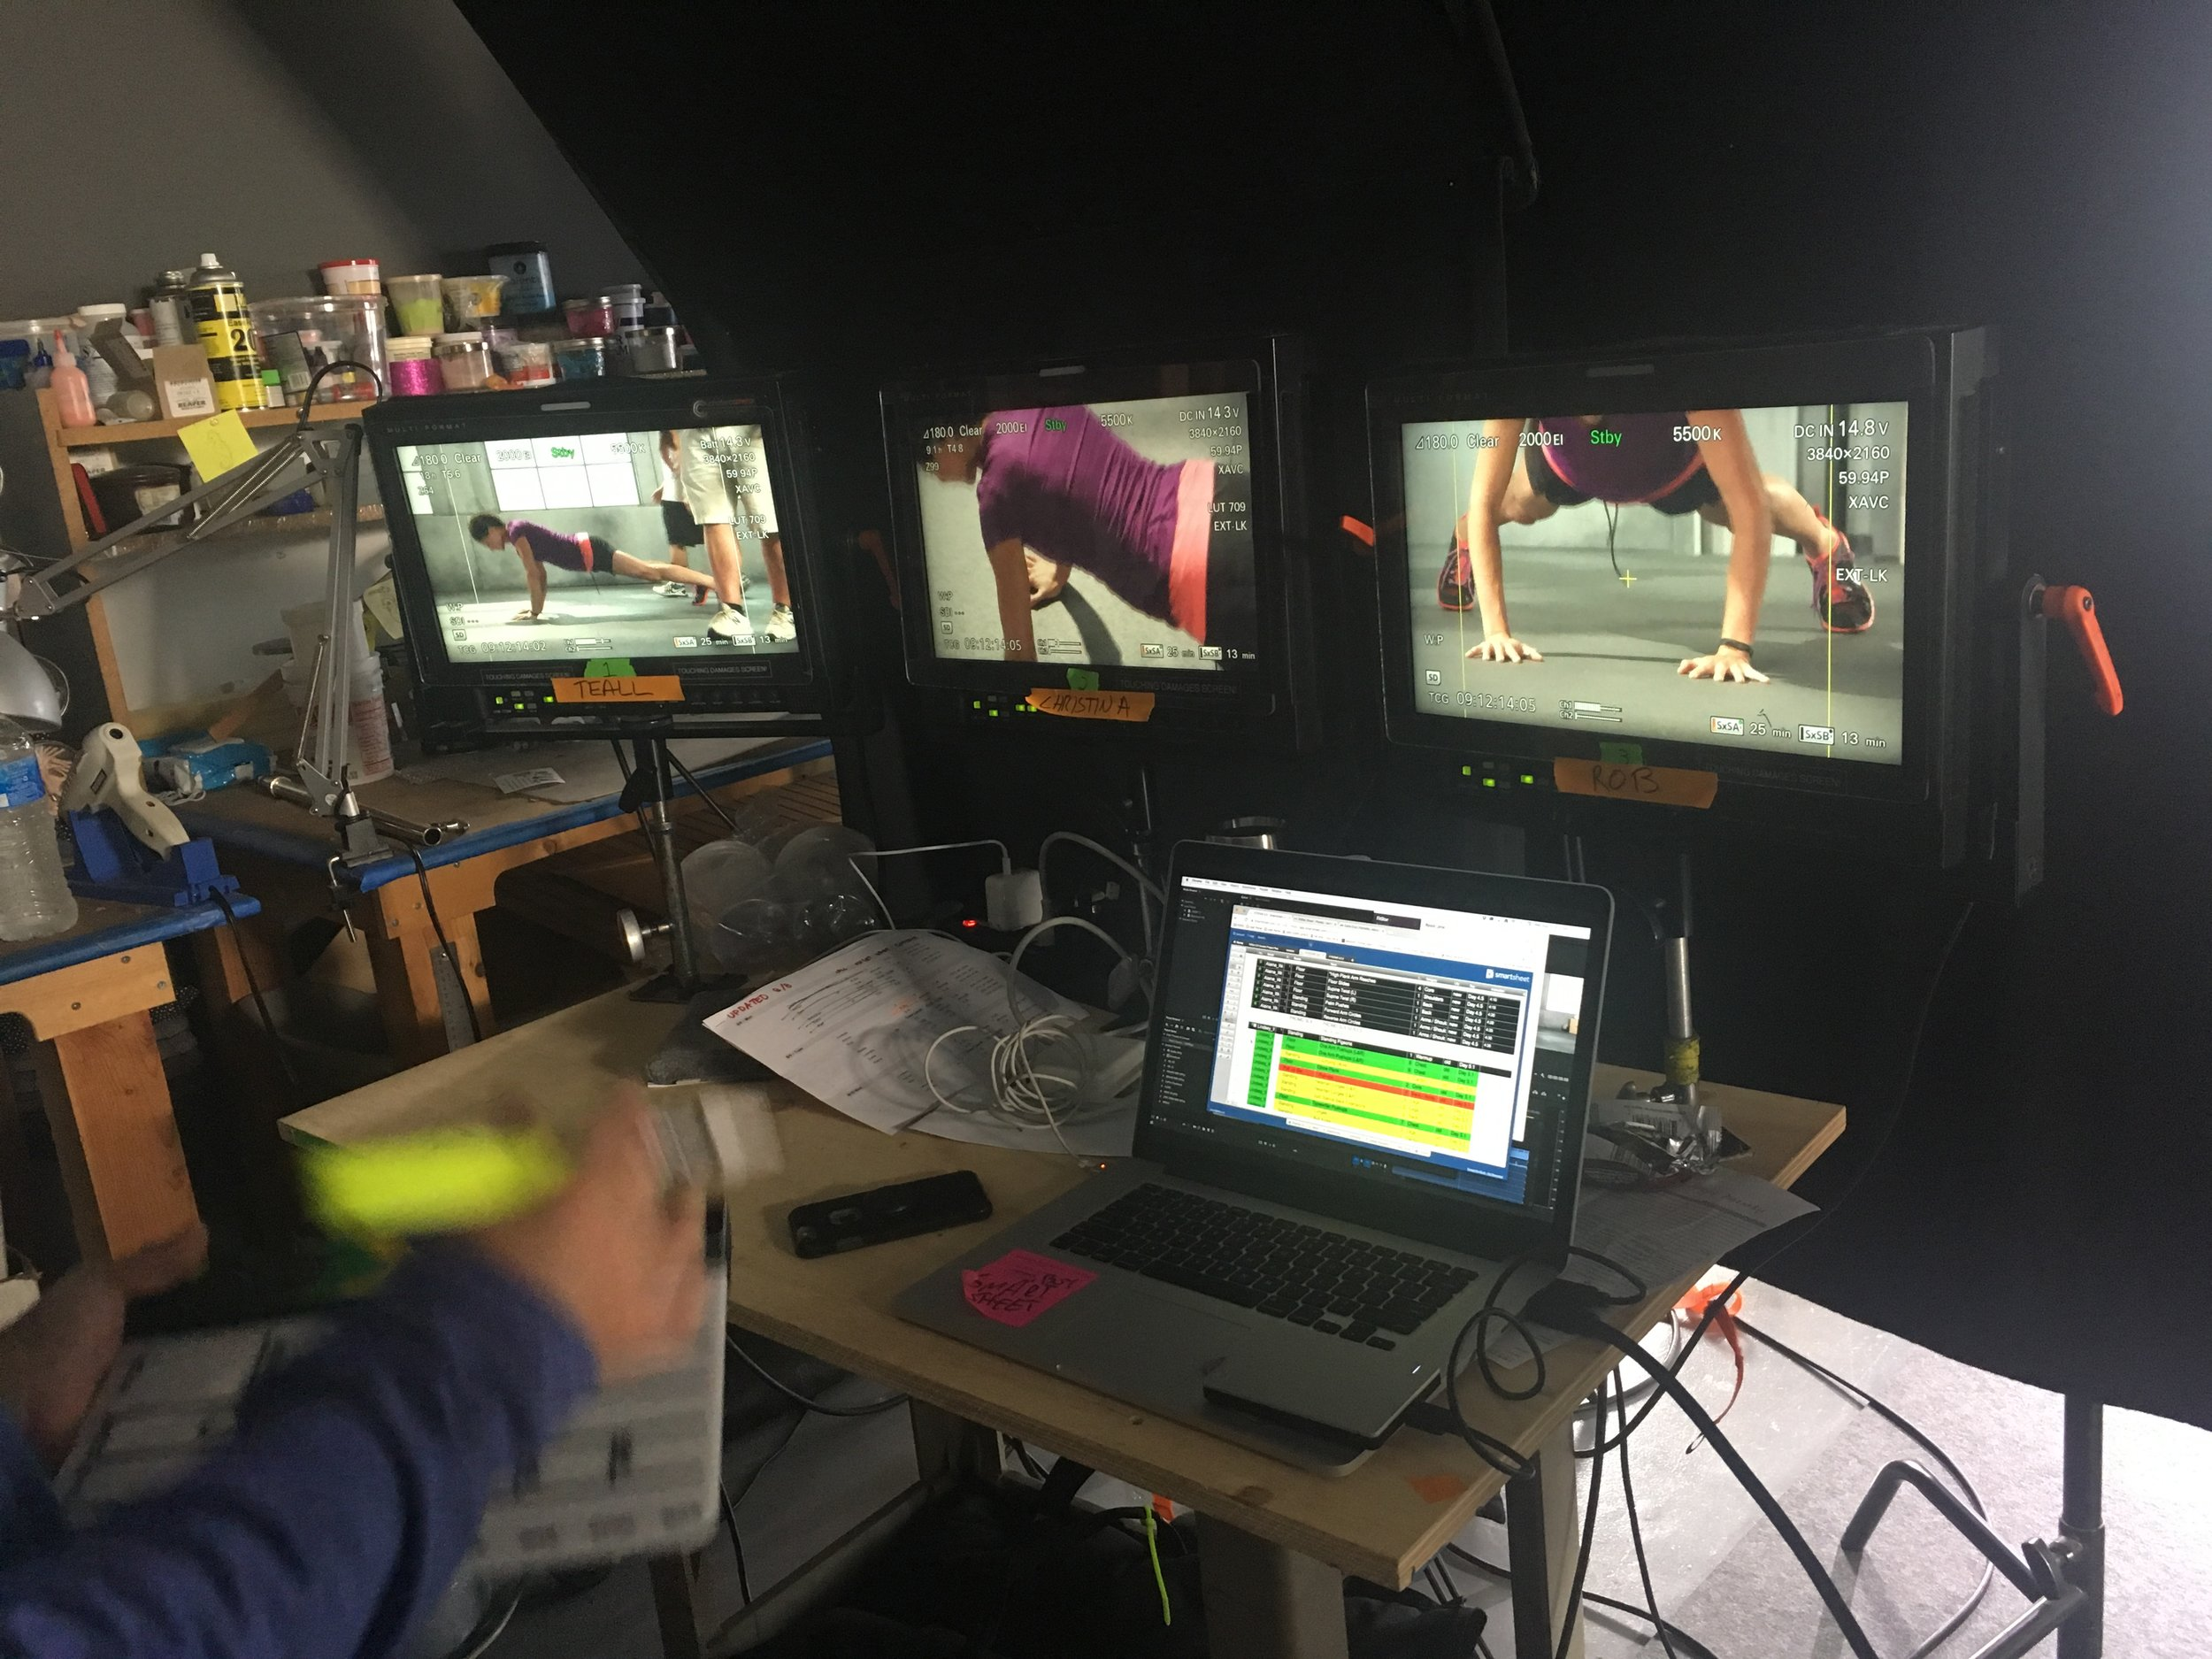 A glimpse of video village on set at the Fitstar moves production. Over 600 setups of exercise moves were captured by over 17 models on a rigid timeline. Precision and form were paramount, thus requiring a team of experts to advise our fitness trainers.